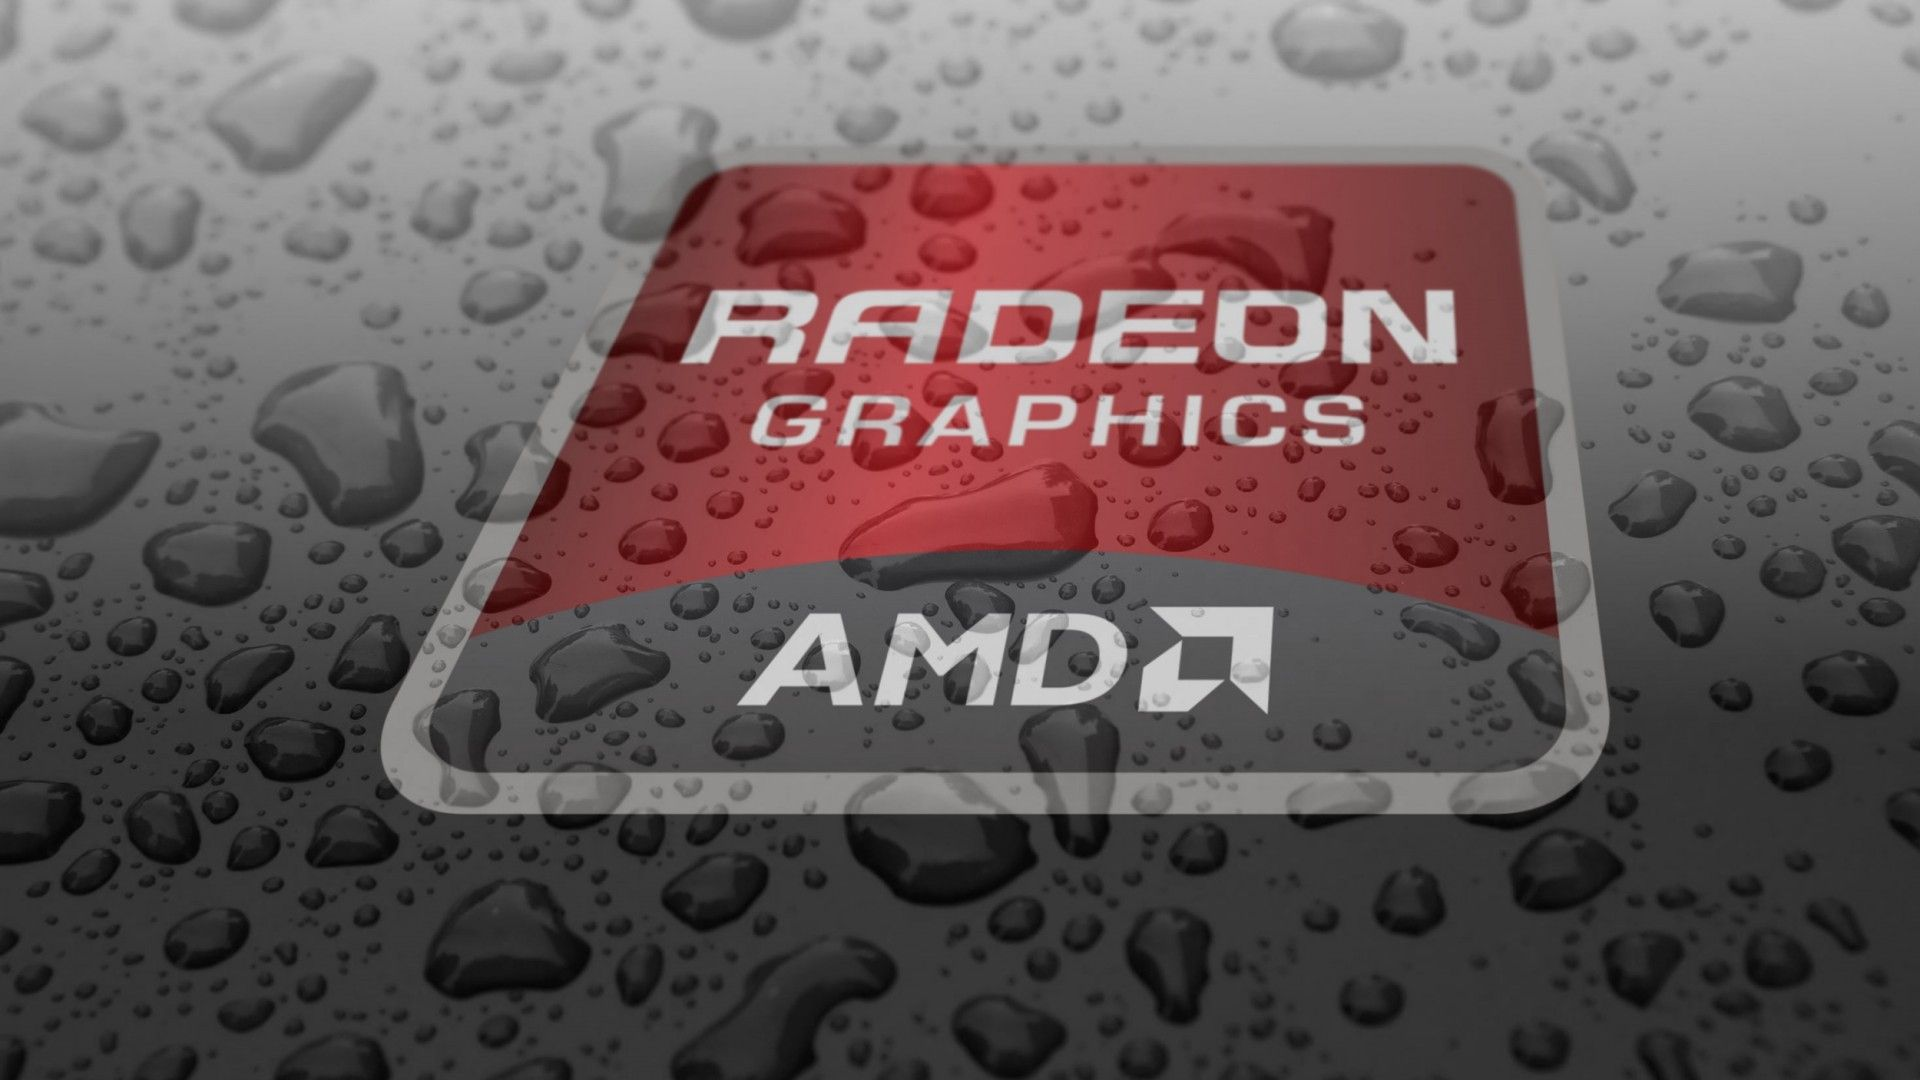 How to Fix AMD Radeon Graphics Error 43 on Windows 10 - The